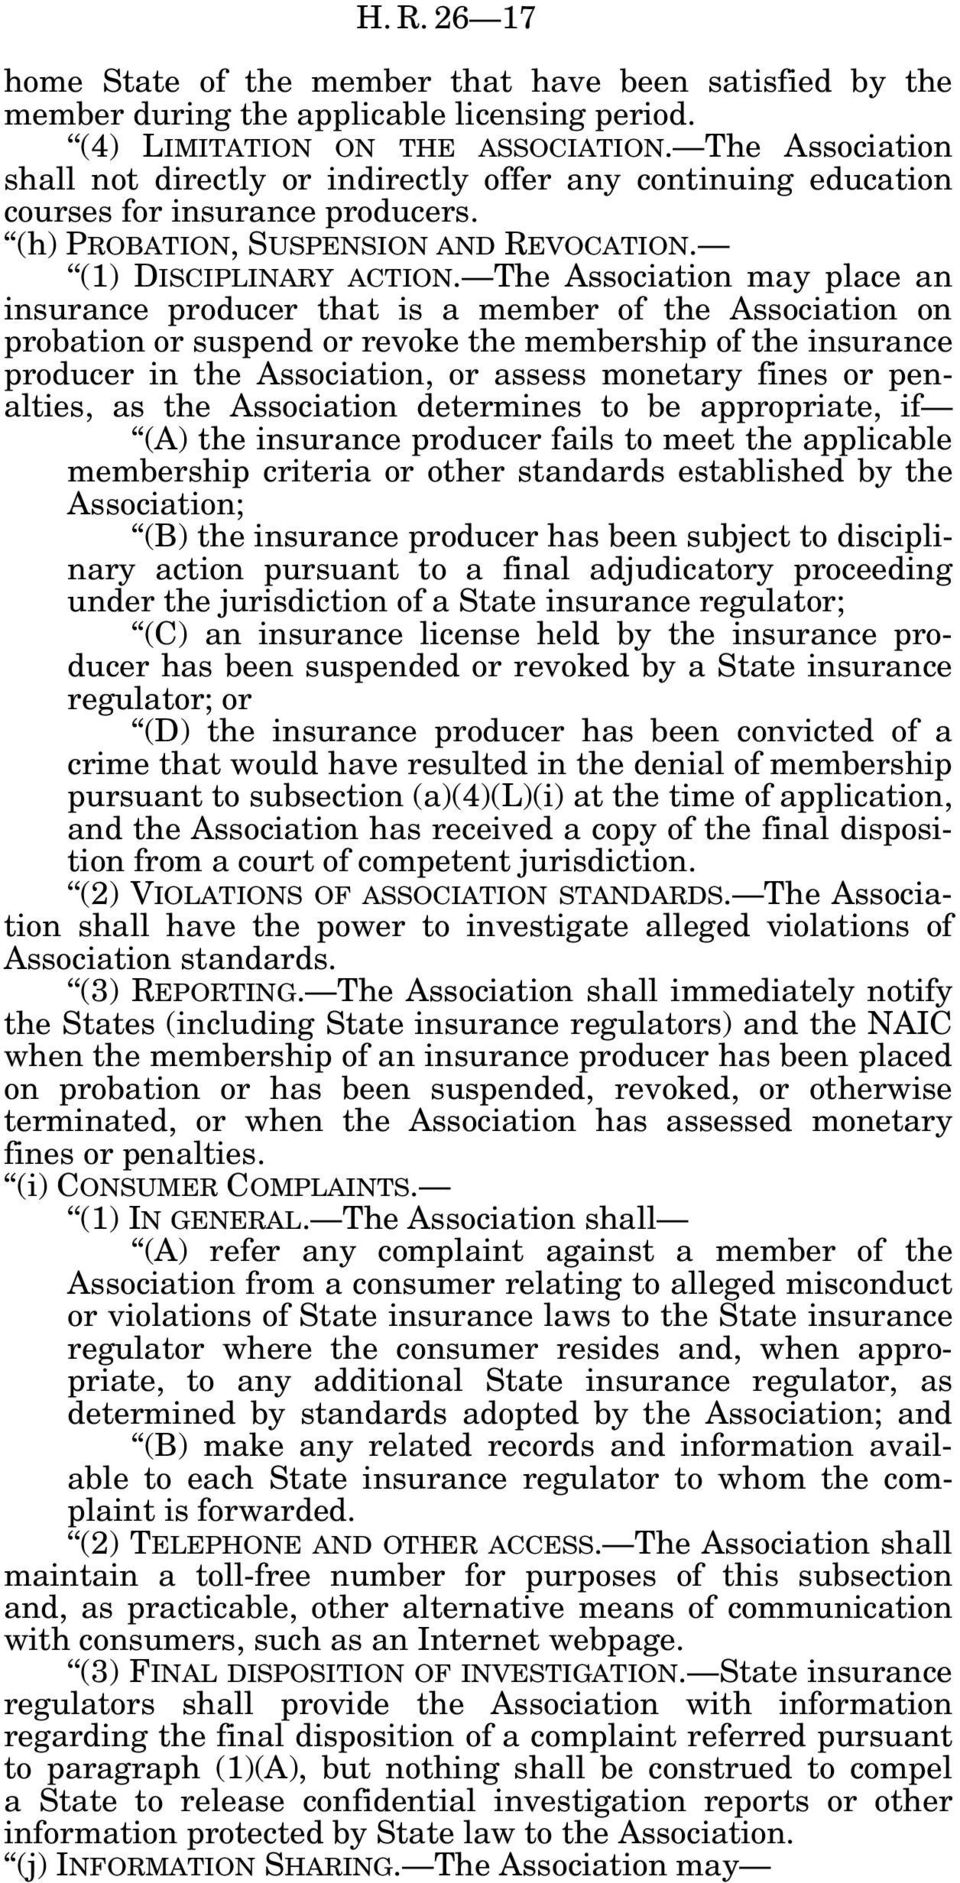 The Association may place an insurance producer that is a member of the Association on probation or suspend or revoke the membership of the insurance producer in the Association, or assess monetary